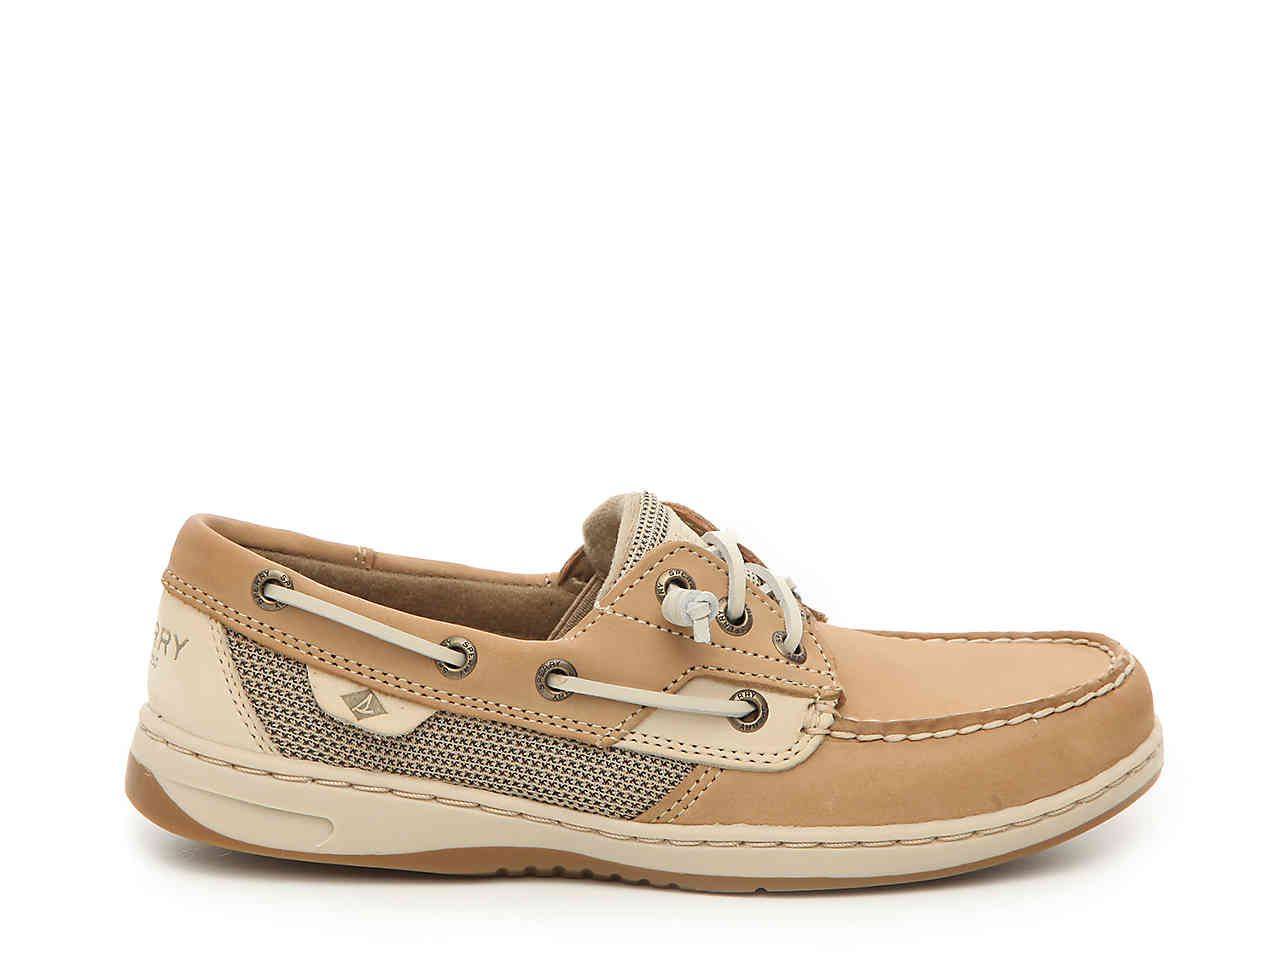 Sperry Rosefish Boat Shoe   Boat shoes